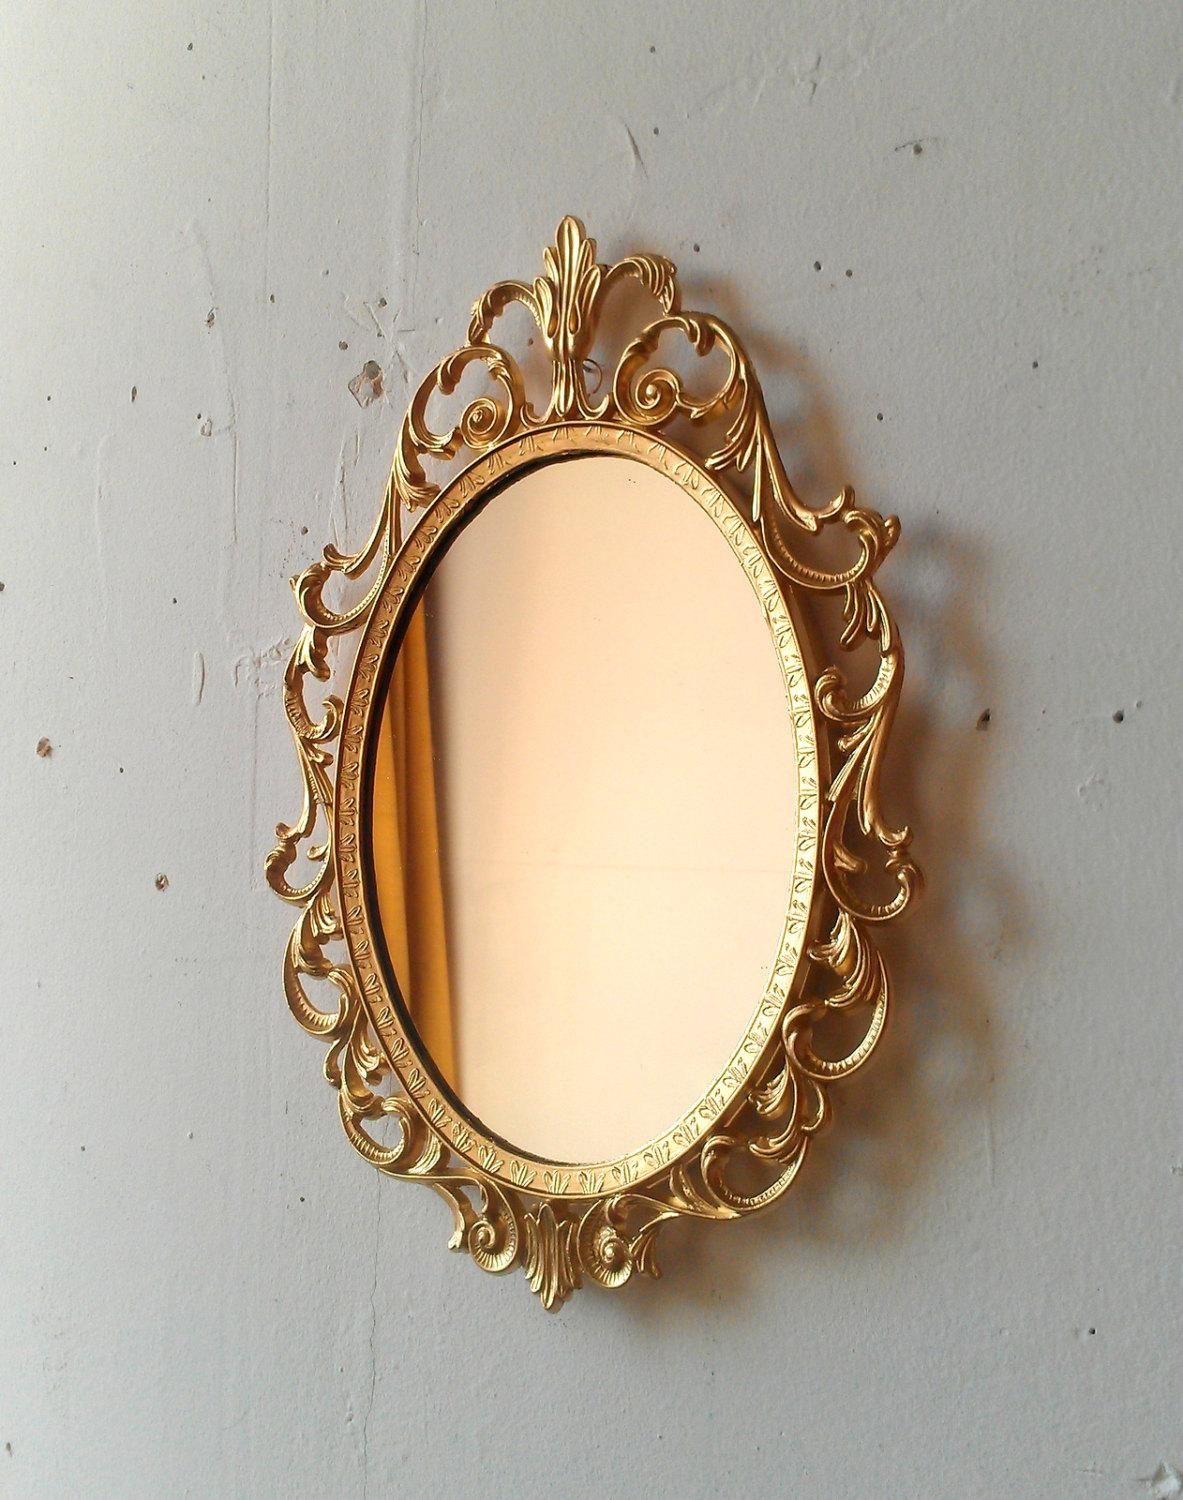 Small Gold Mirror Set 20 Ideas Of Small Gold Mirrors Mirror Ideas